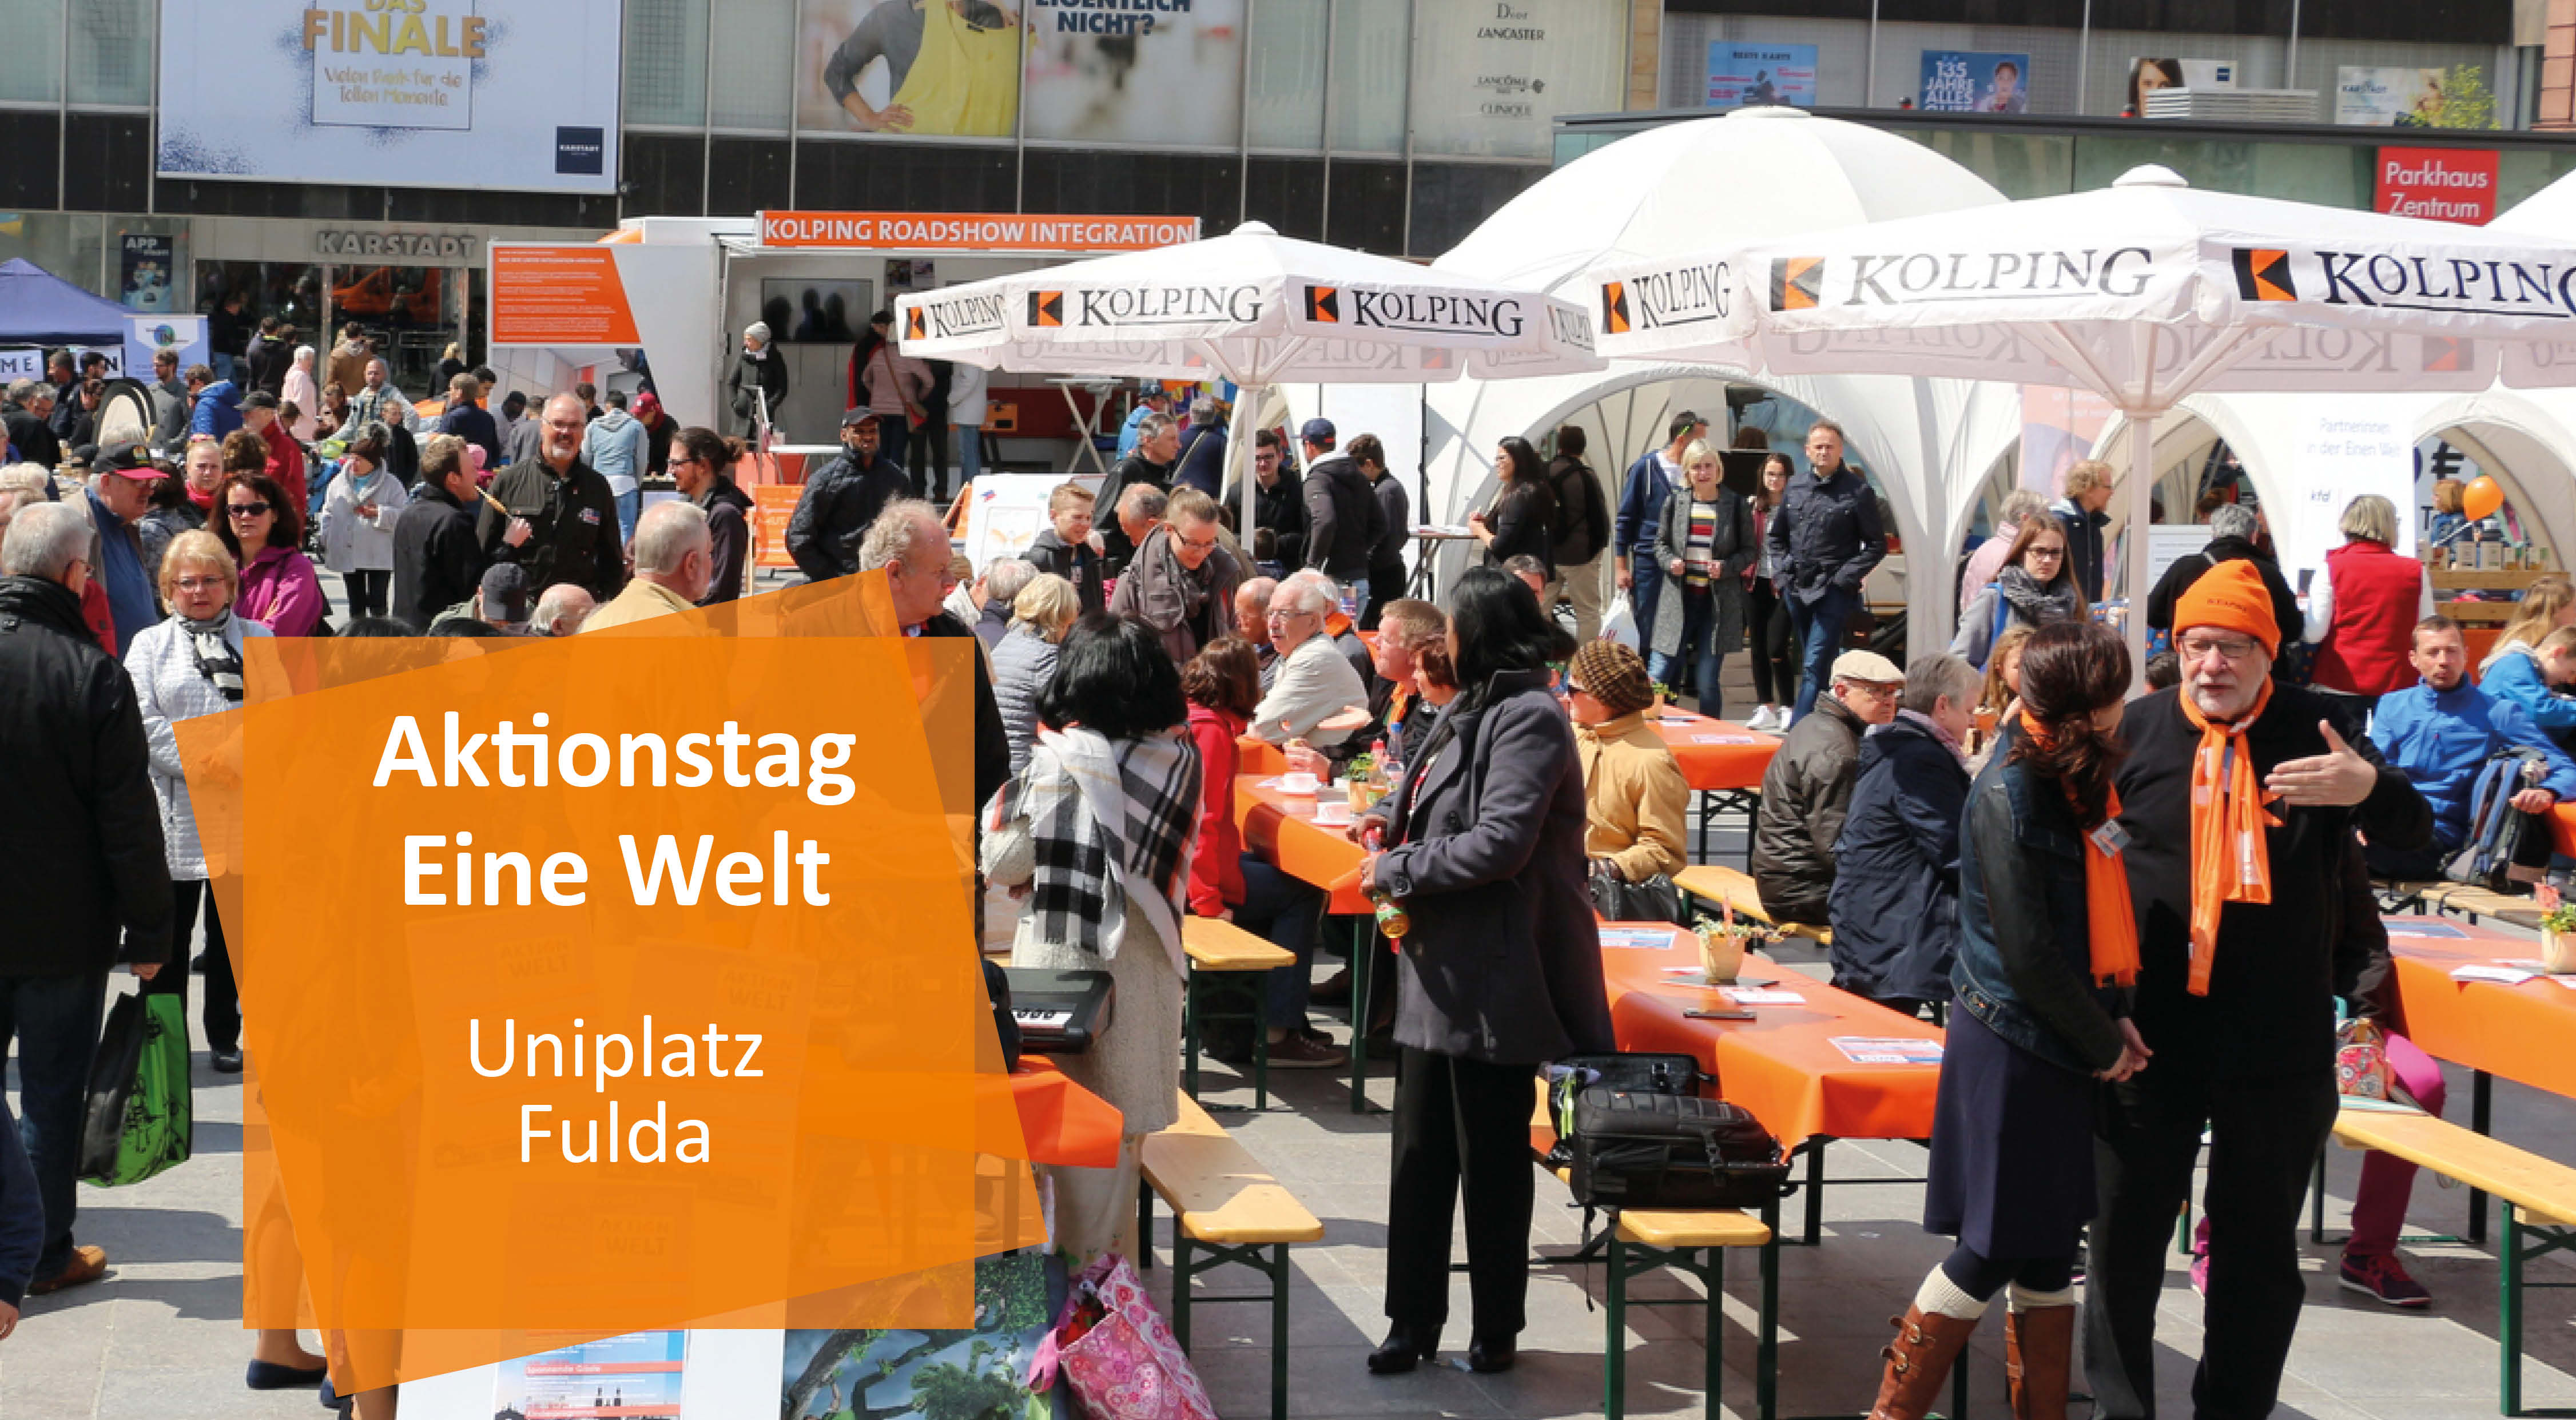 Aktionstag Eine Welt | 25. April 2020